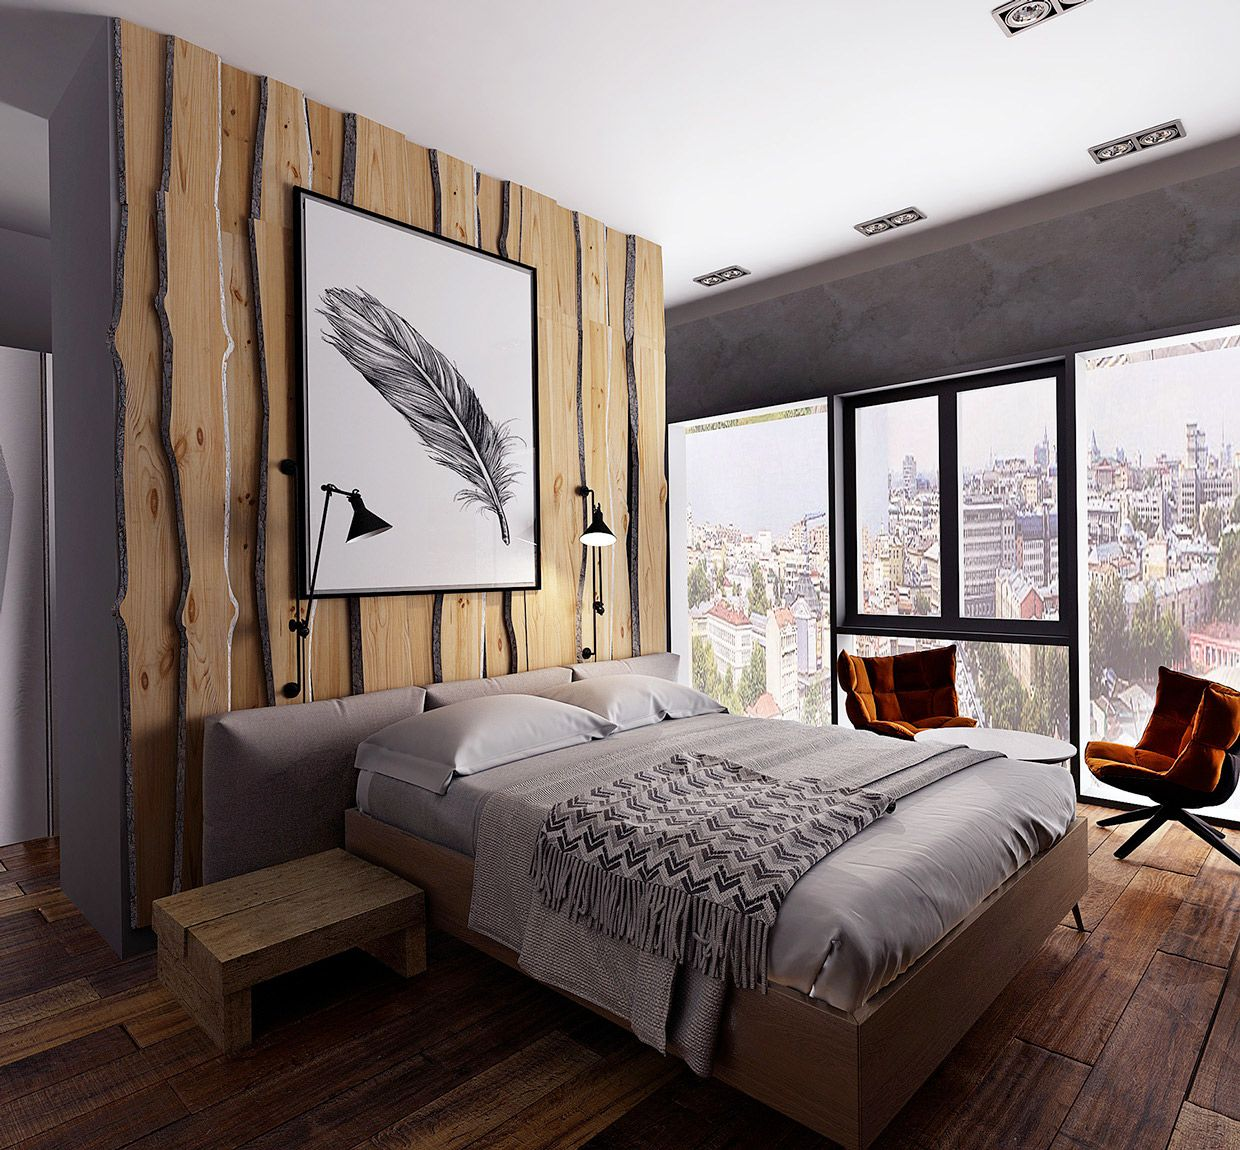 Wooden Wall Designs 30 Striking Bedrooms That Use The Wood Finish Artfully Modern Rustic Bedroom Decor Rustic Bedroom Decor Rustic Bedroom Design